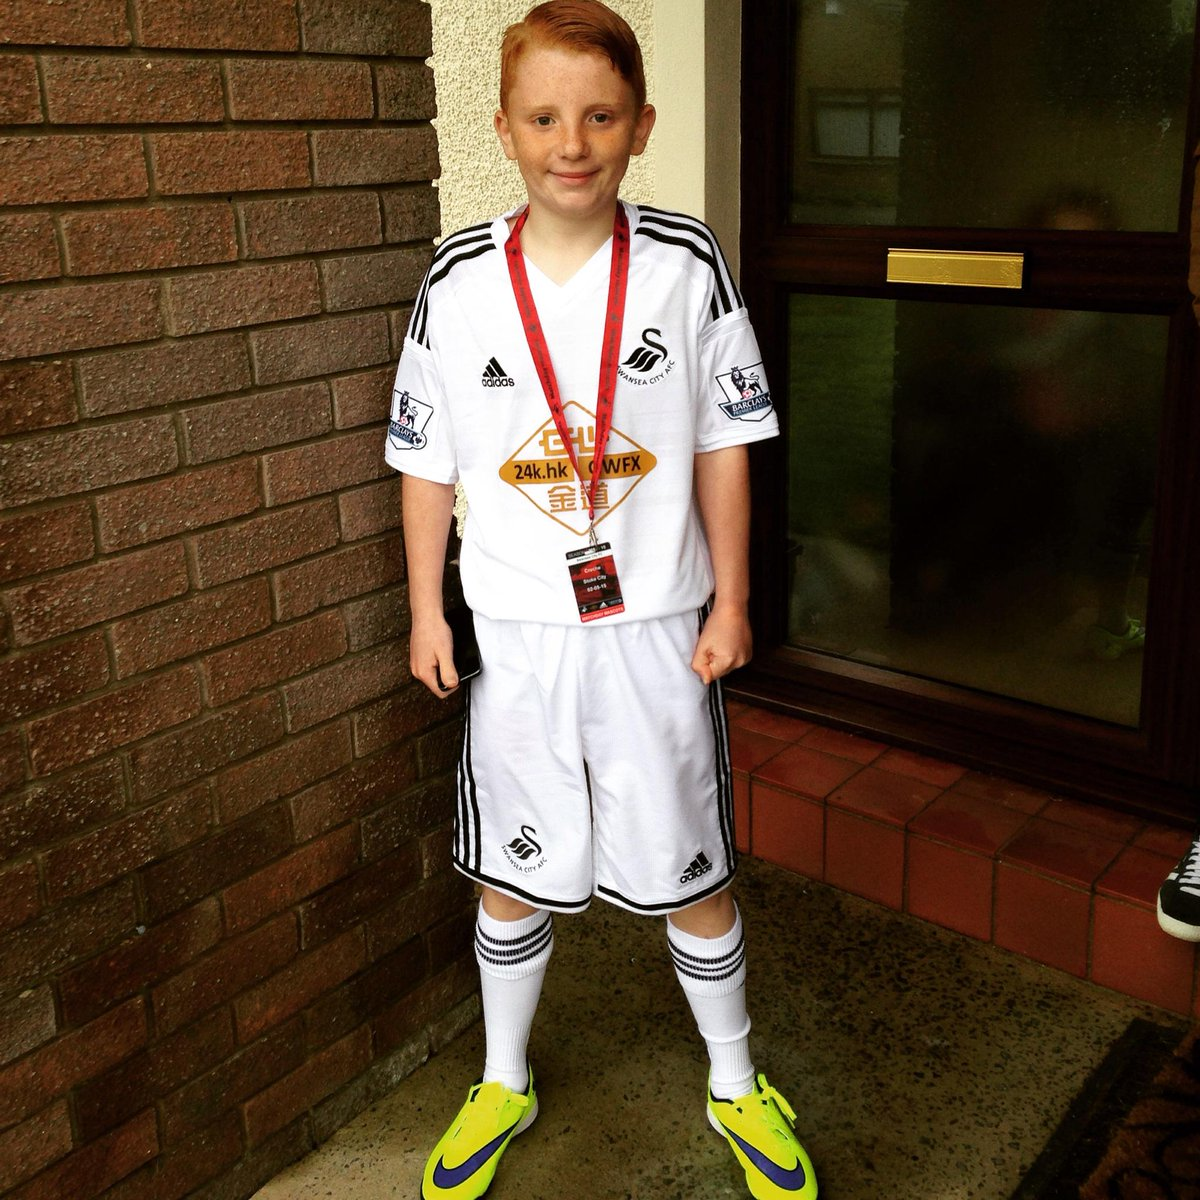 Today is the day! Josh is so excited to be mascot at Swansea v stoke today.  @leighdineen http://t.co/rT54AJ3PEX